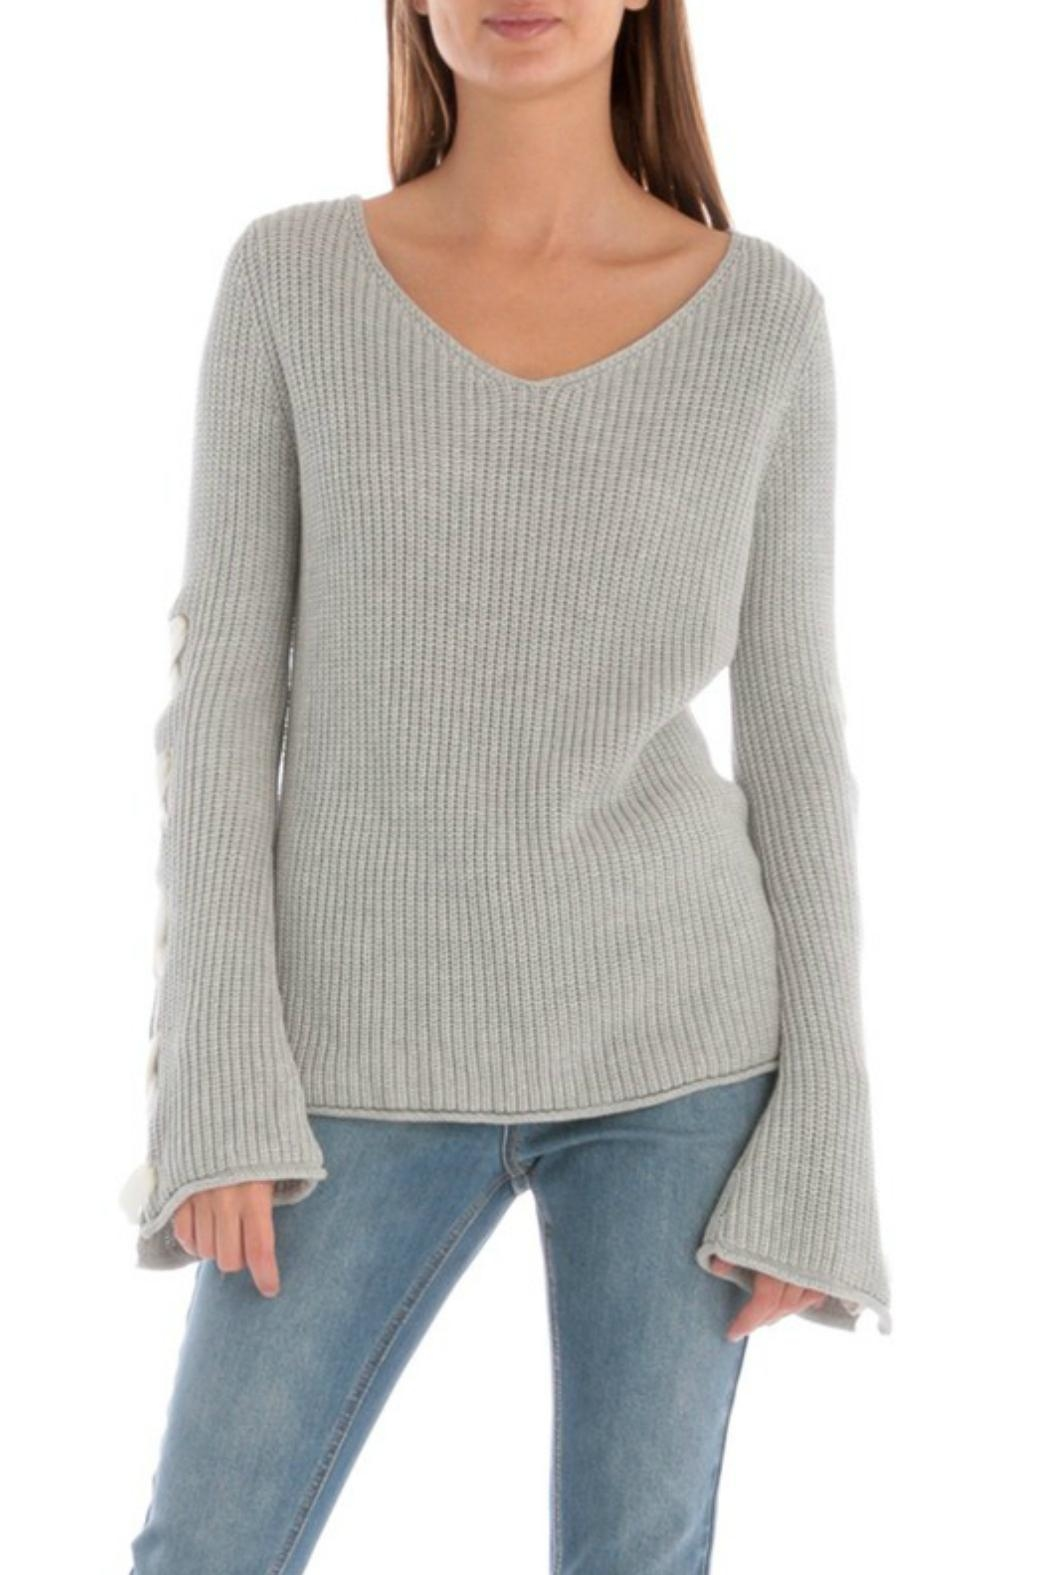 Skies Are Blue Lace Up Sleeve Sweater - Side Cropped Image